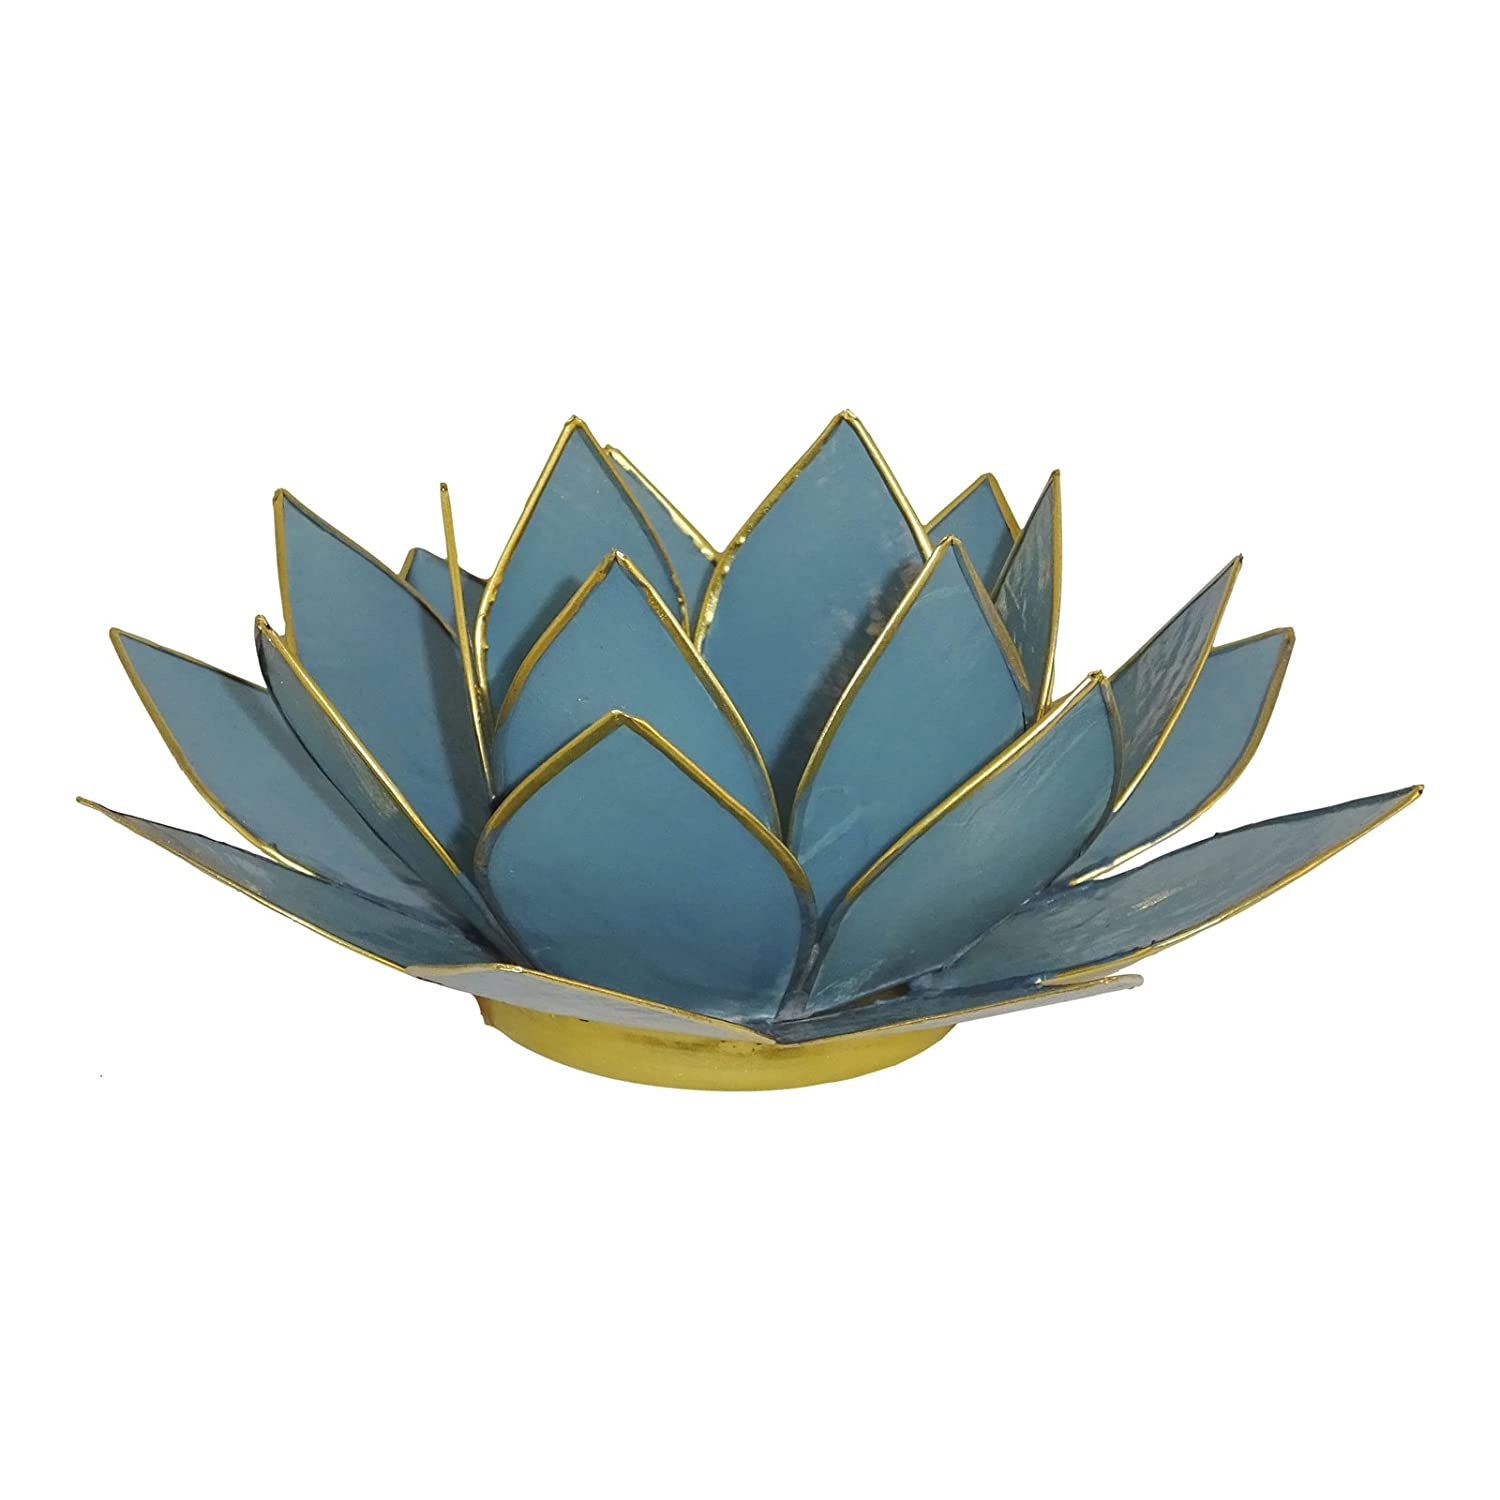 The Crabby Nook Lotus Tea Light Candle Holder Capiz Shell Decorating Accent Home Decor (Dark Green) 47677